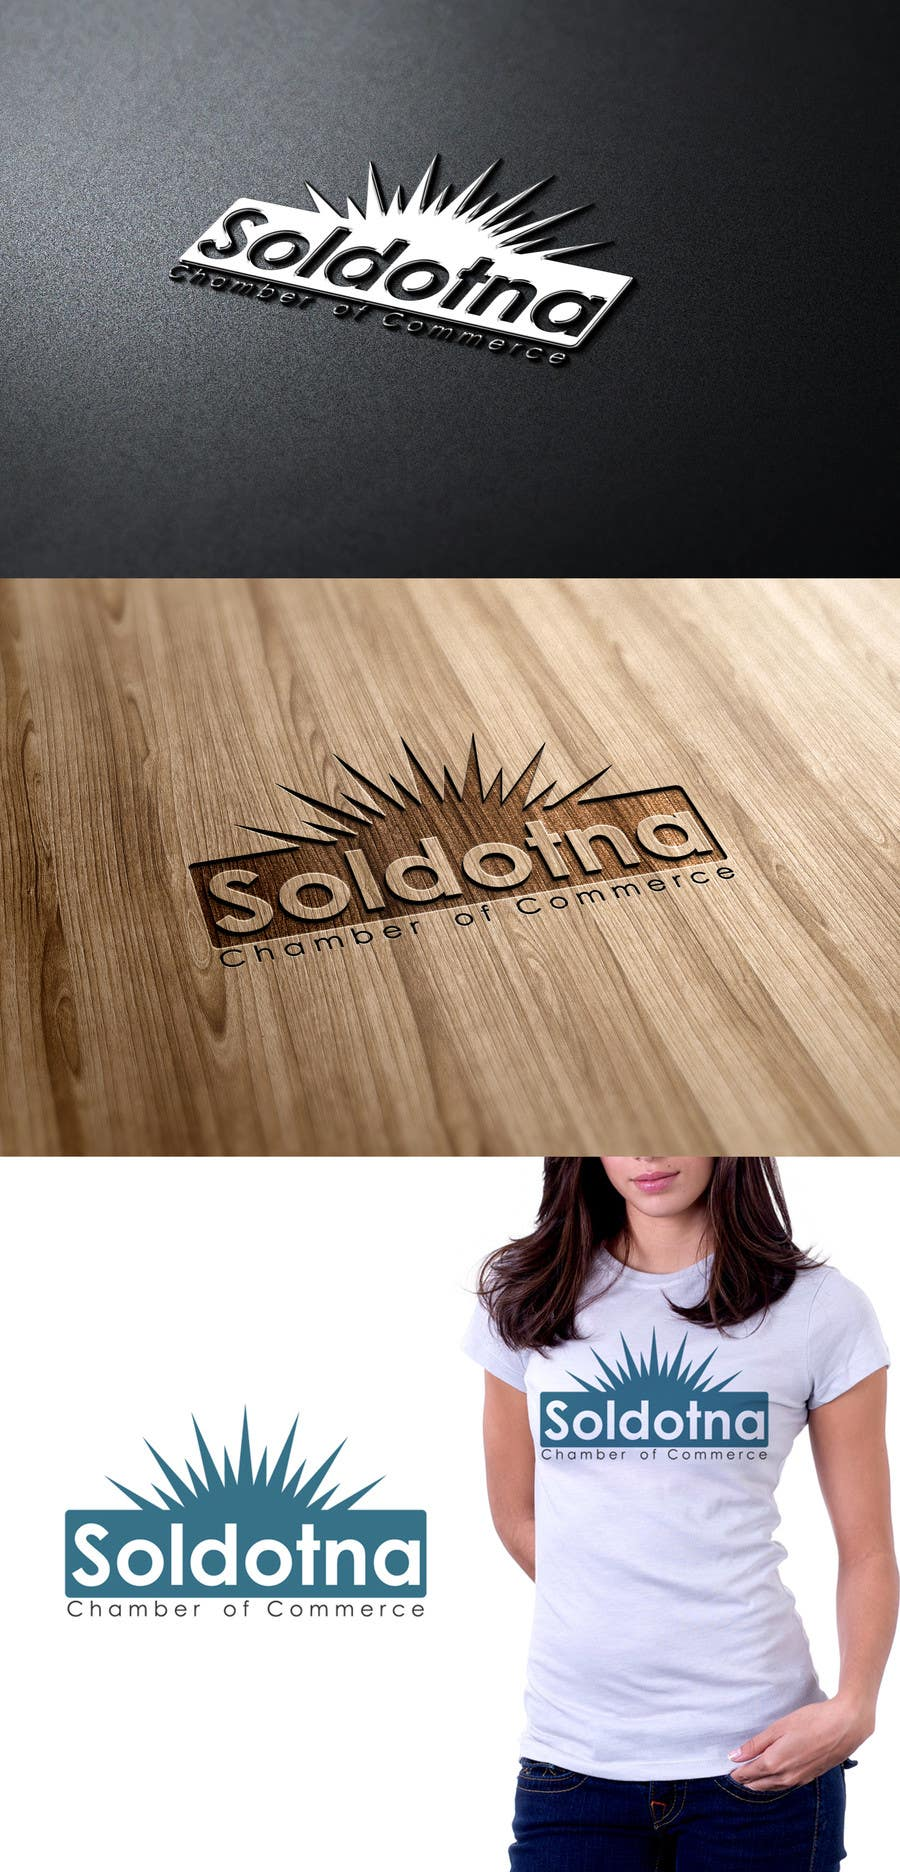 Konkurrenceindlæg #                                        9                                      for                                         Logo Design for Soldotna Chamber of Commerce